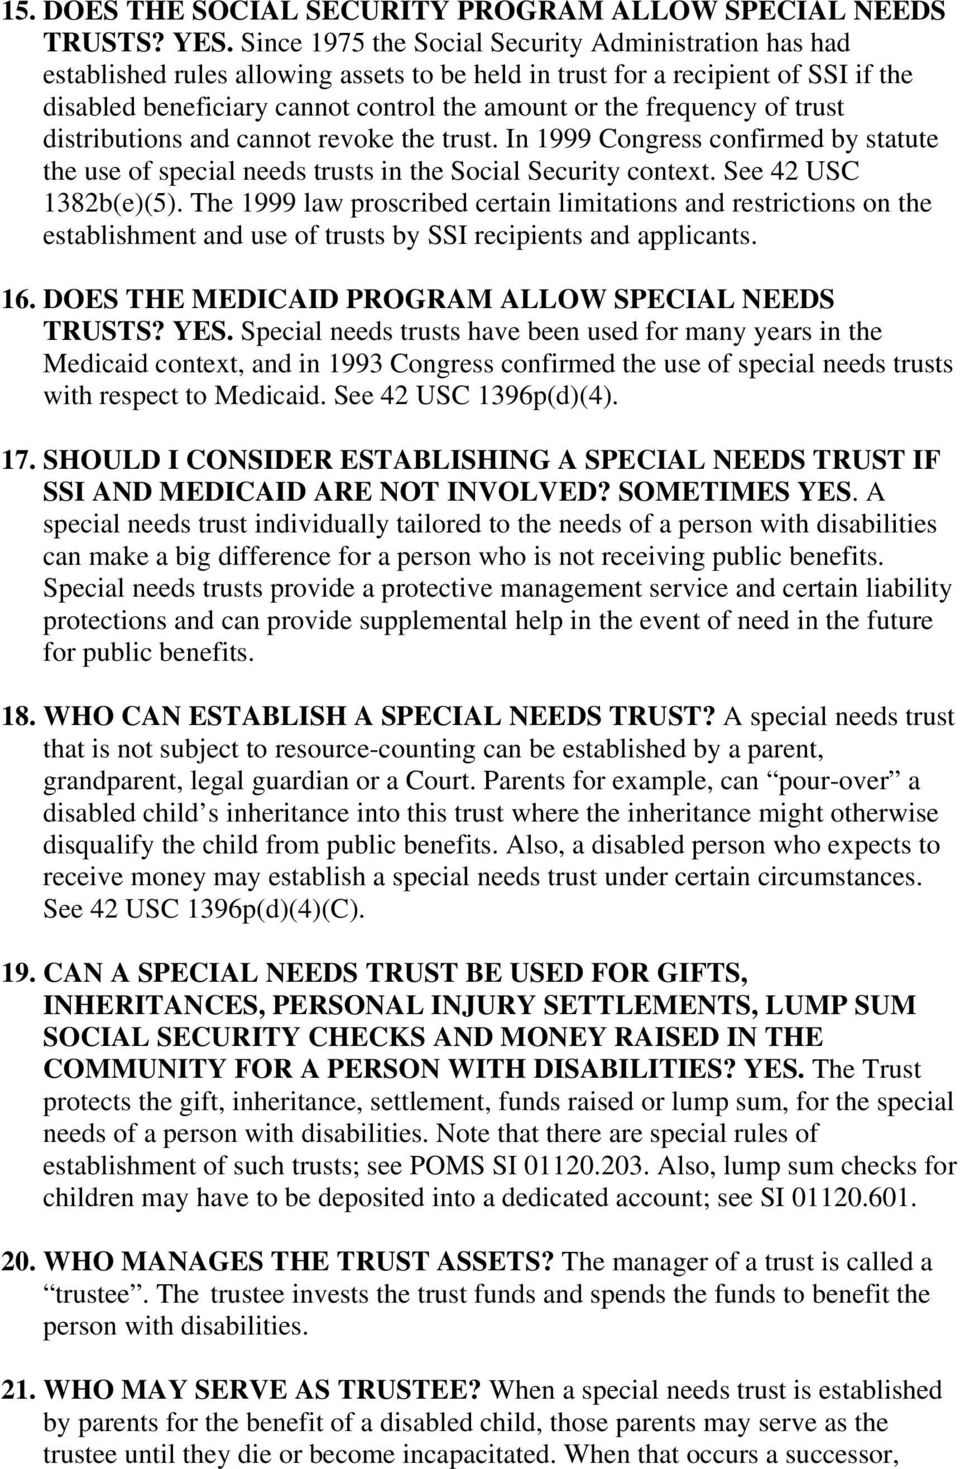 frequency of trust distributions and cannot revoke the trust. In 1999 Congress confirmed by statute the use of special needs trusts in the Social Security context. See 42 USC 1382b(e)(5).